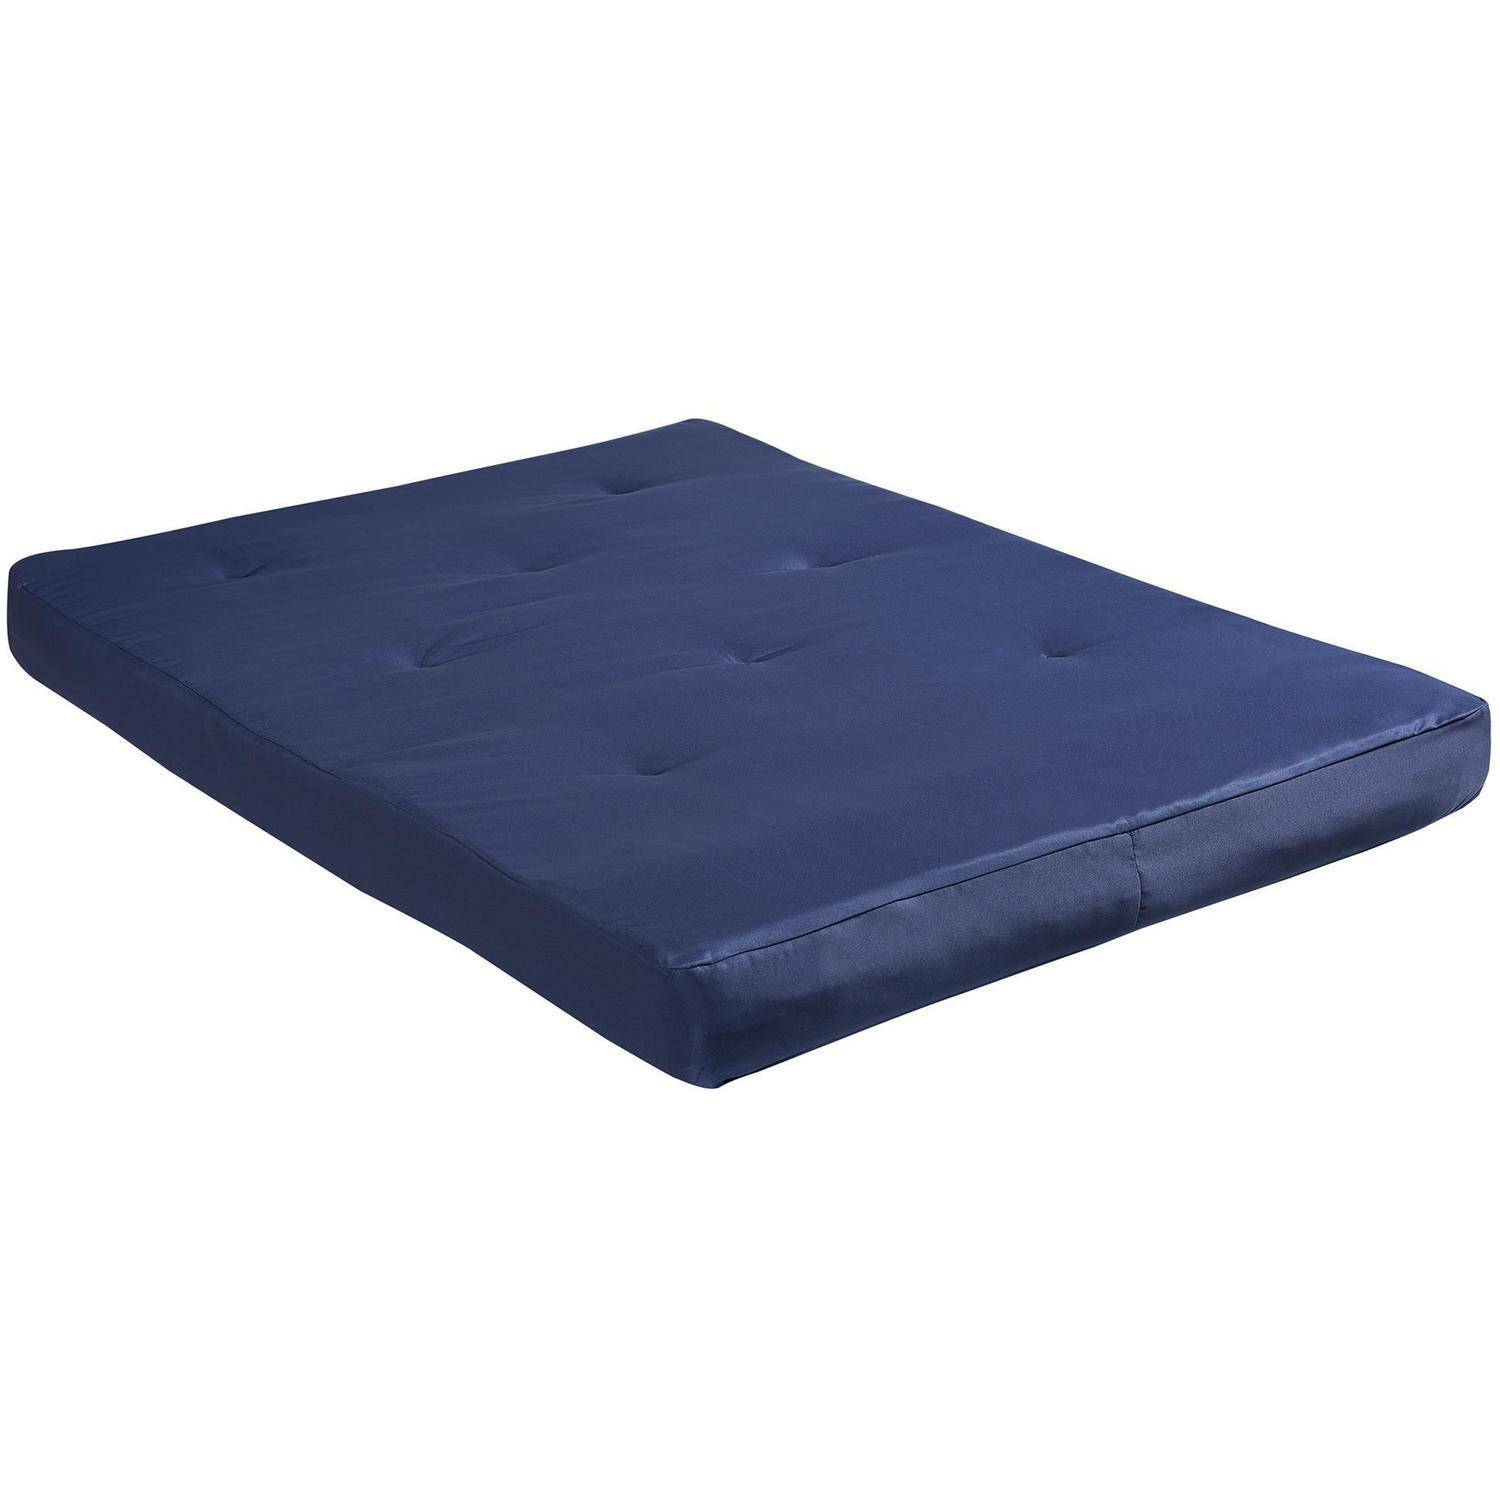 "DHP 8"" Futon Mattress, Full-Size, Navy Blue by Dorel Home Products"